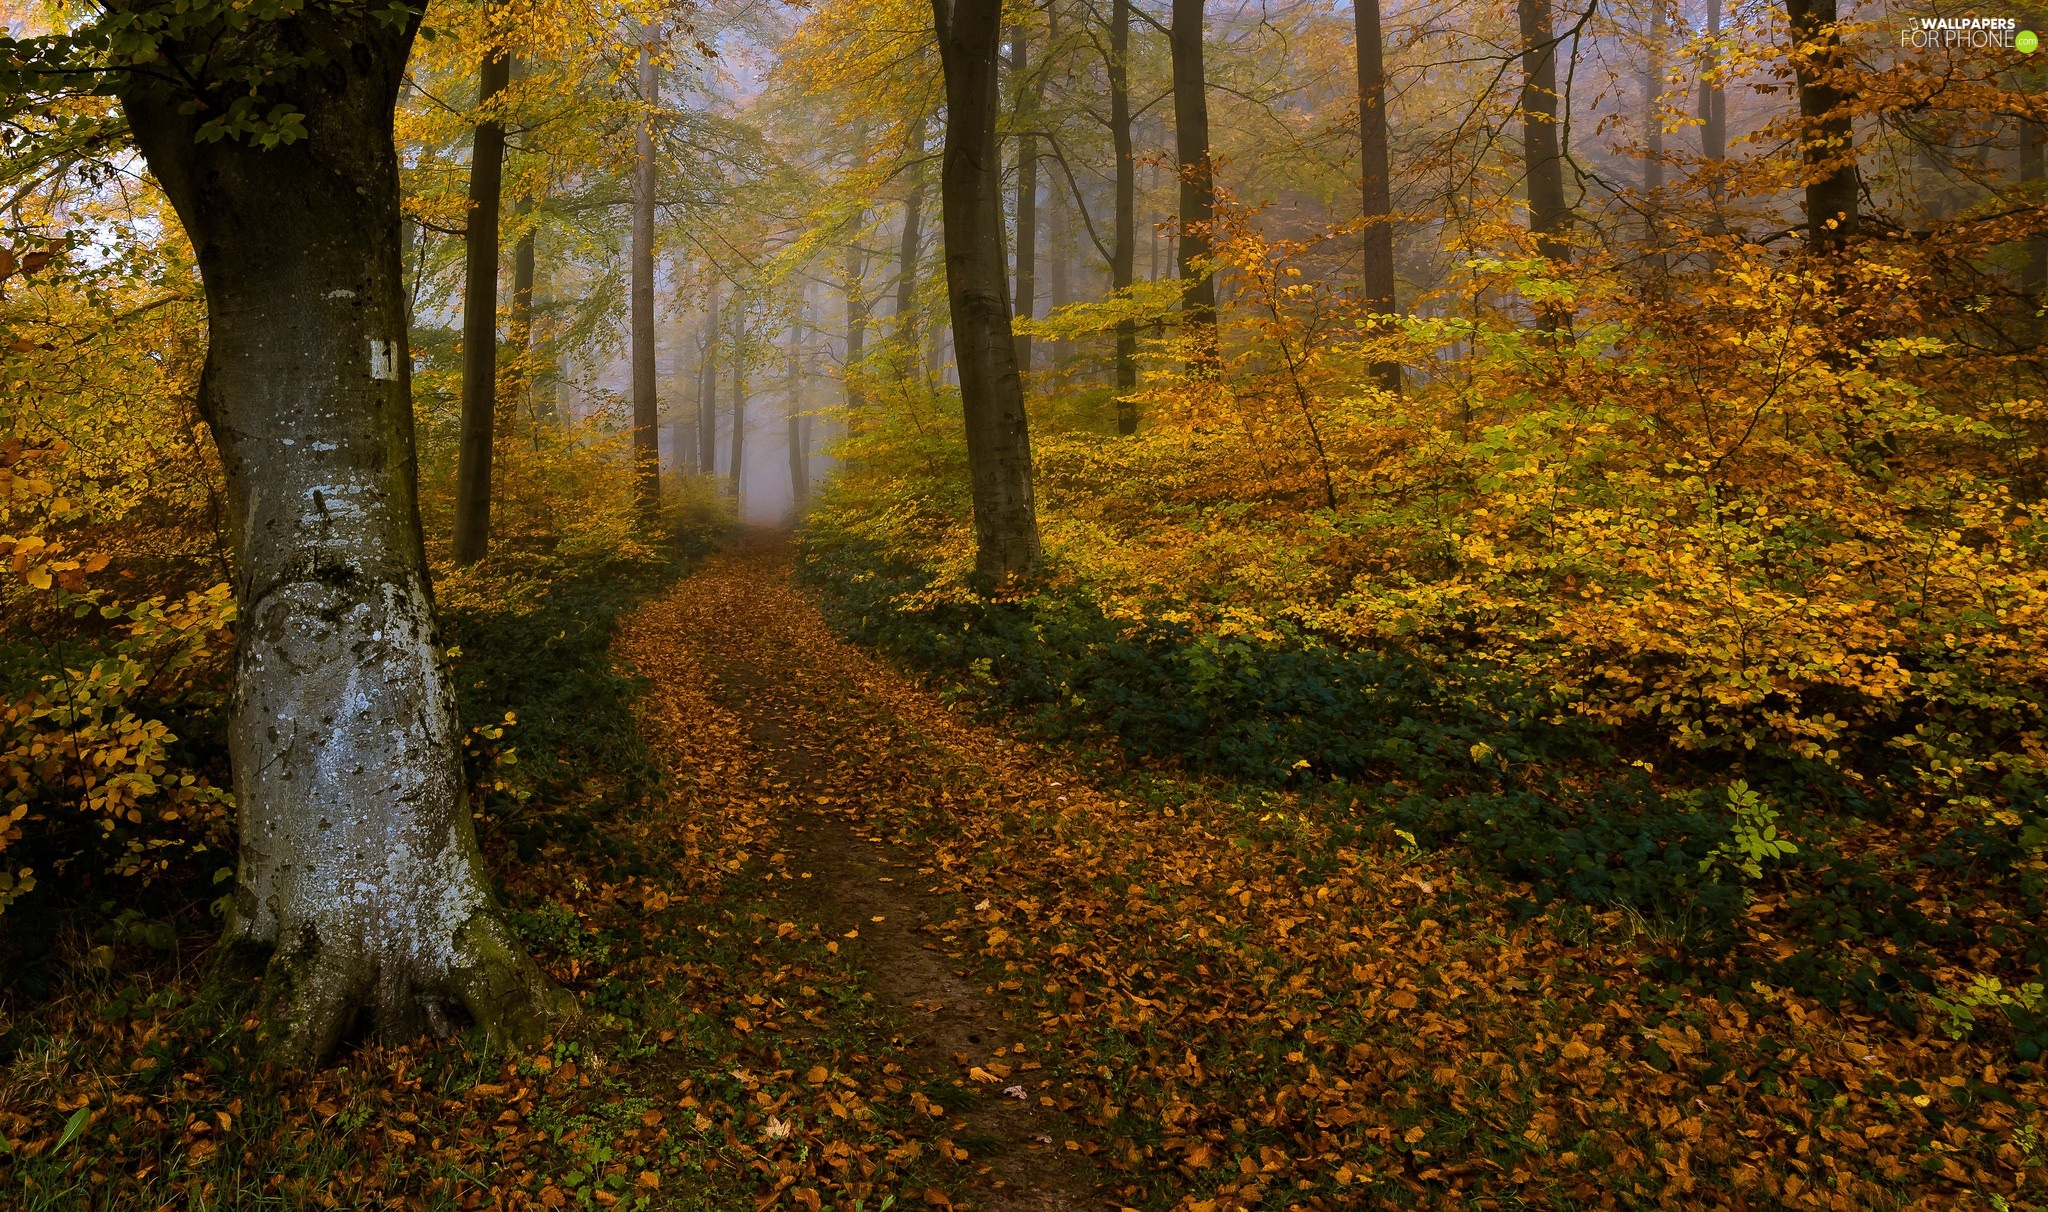 leaved, Fog, viewes, forest, autumn, trees, Way